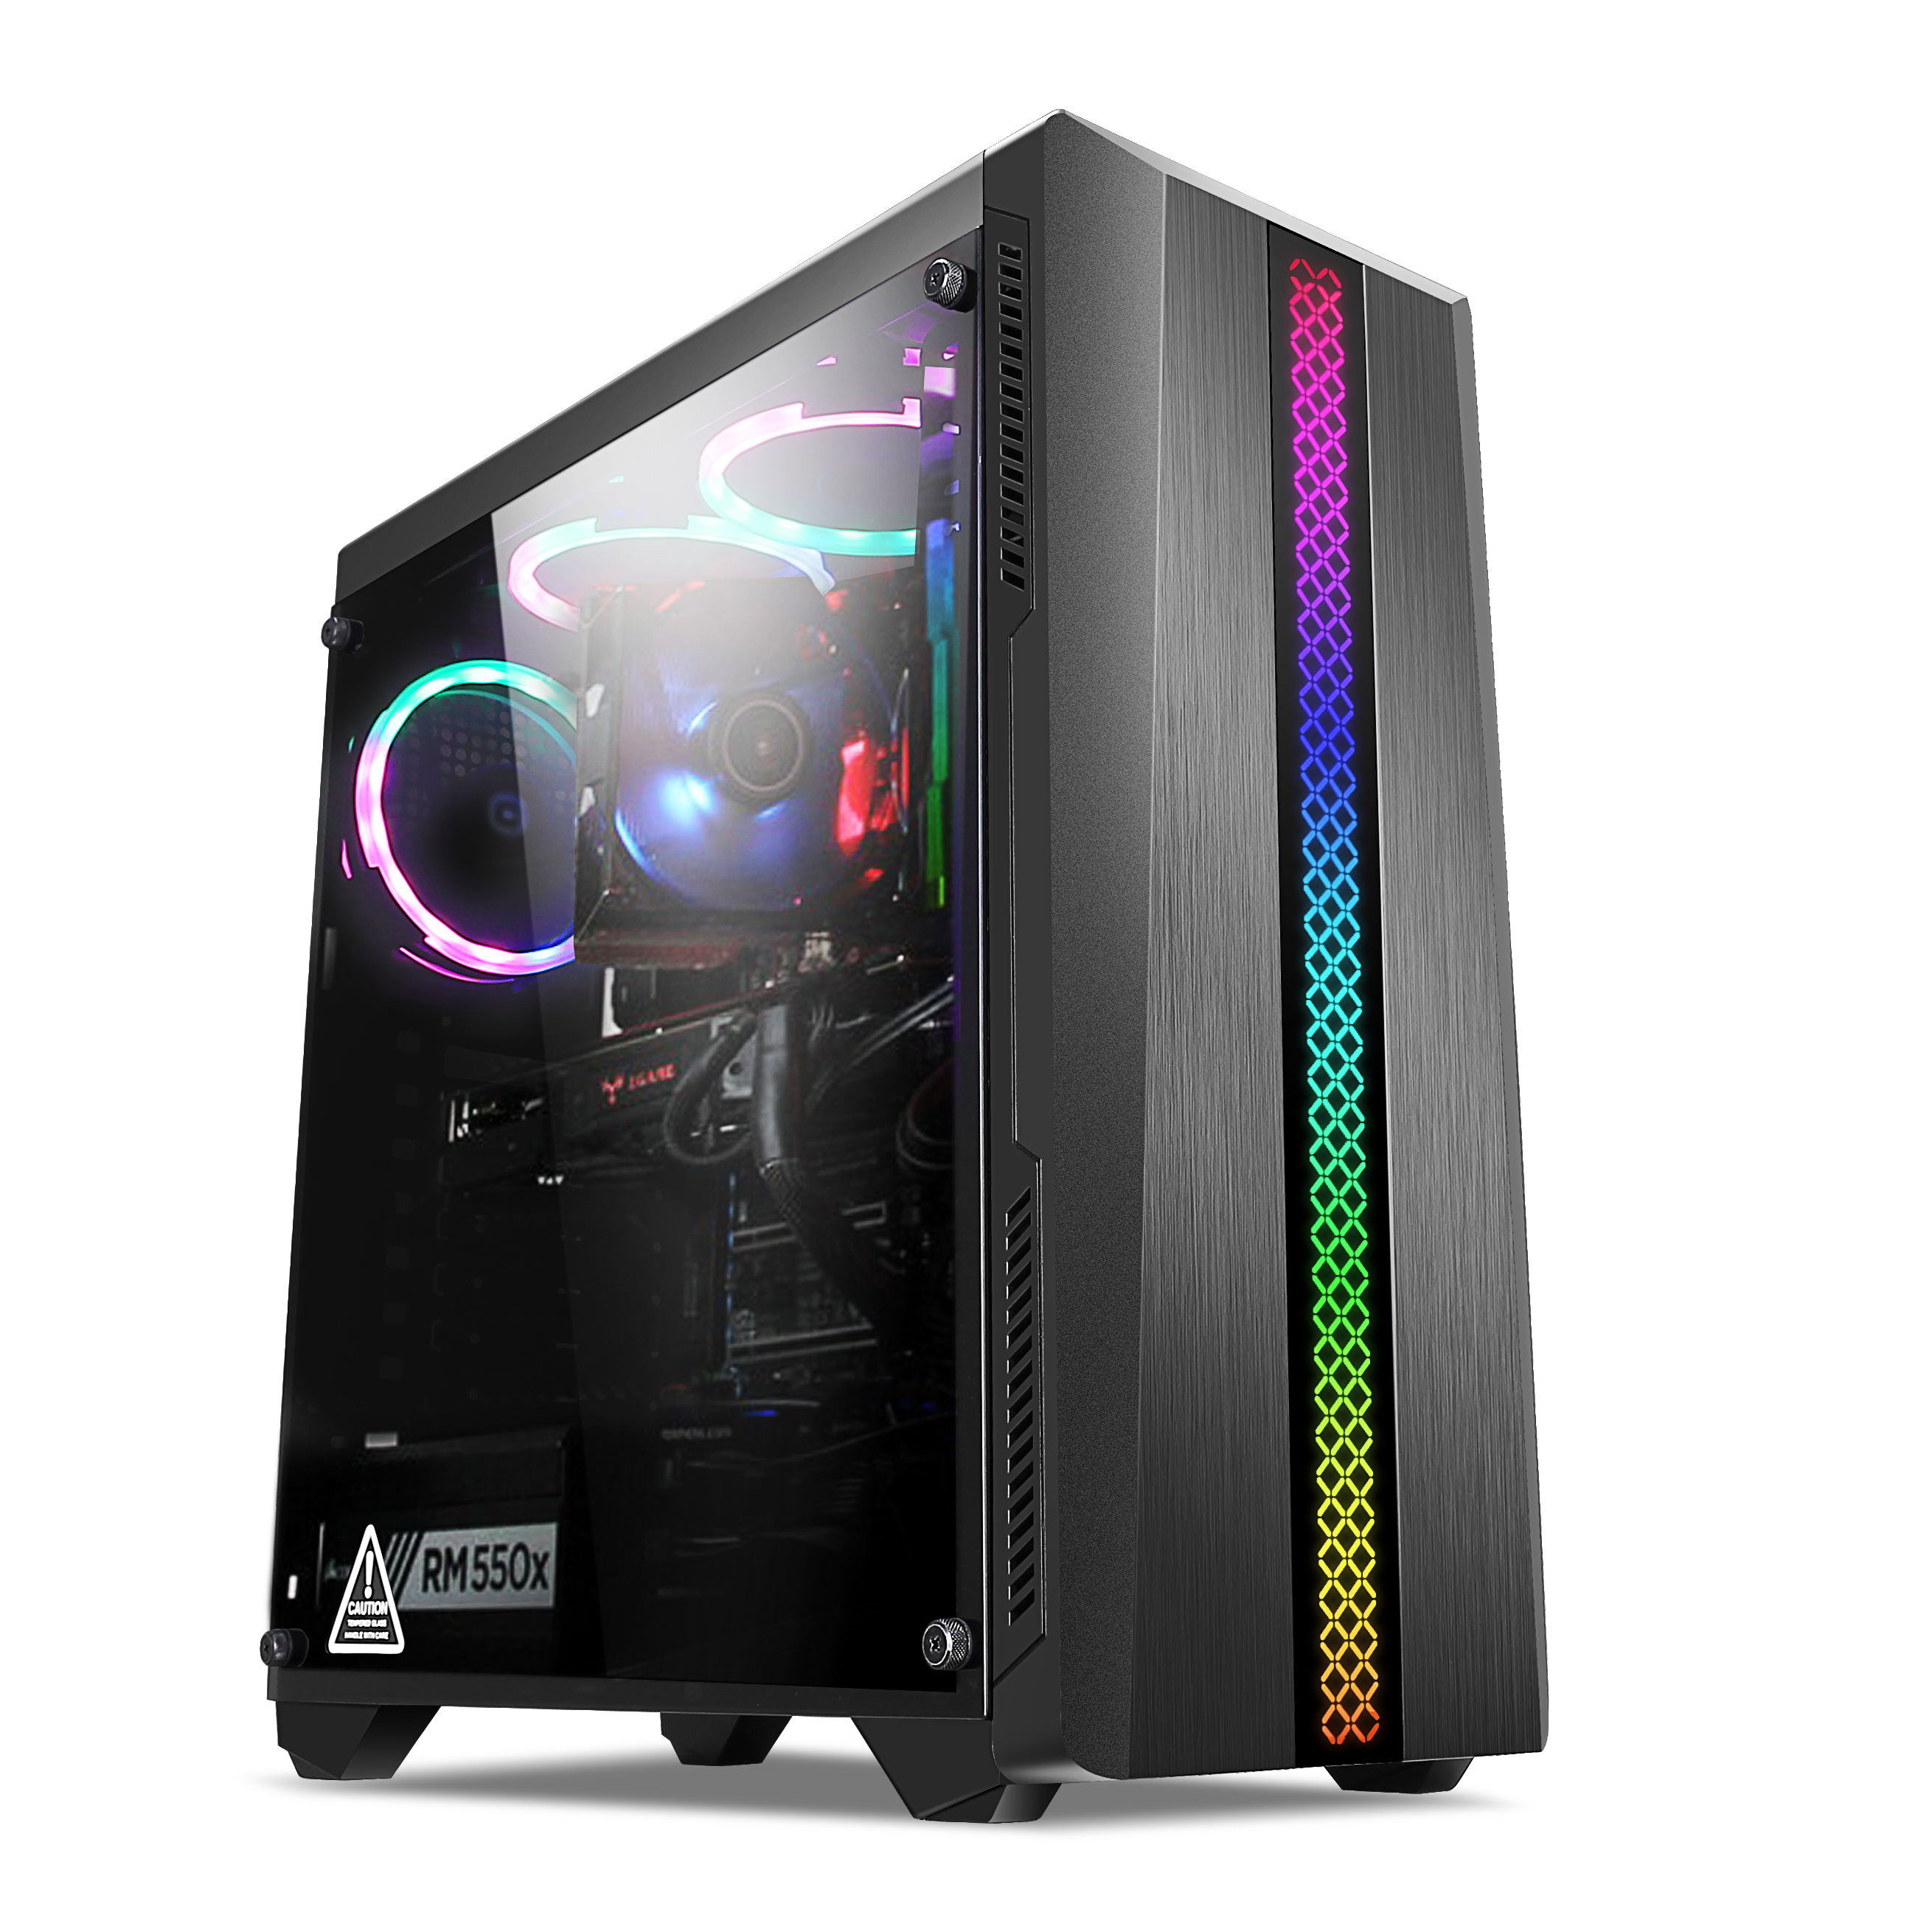 SNY M02 Tempered glass computer gaming case